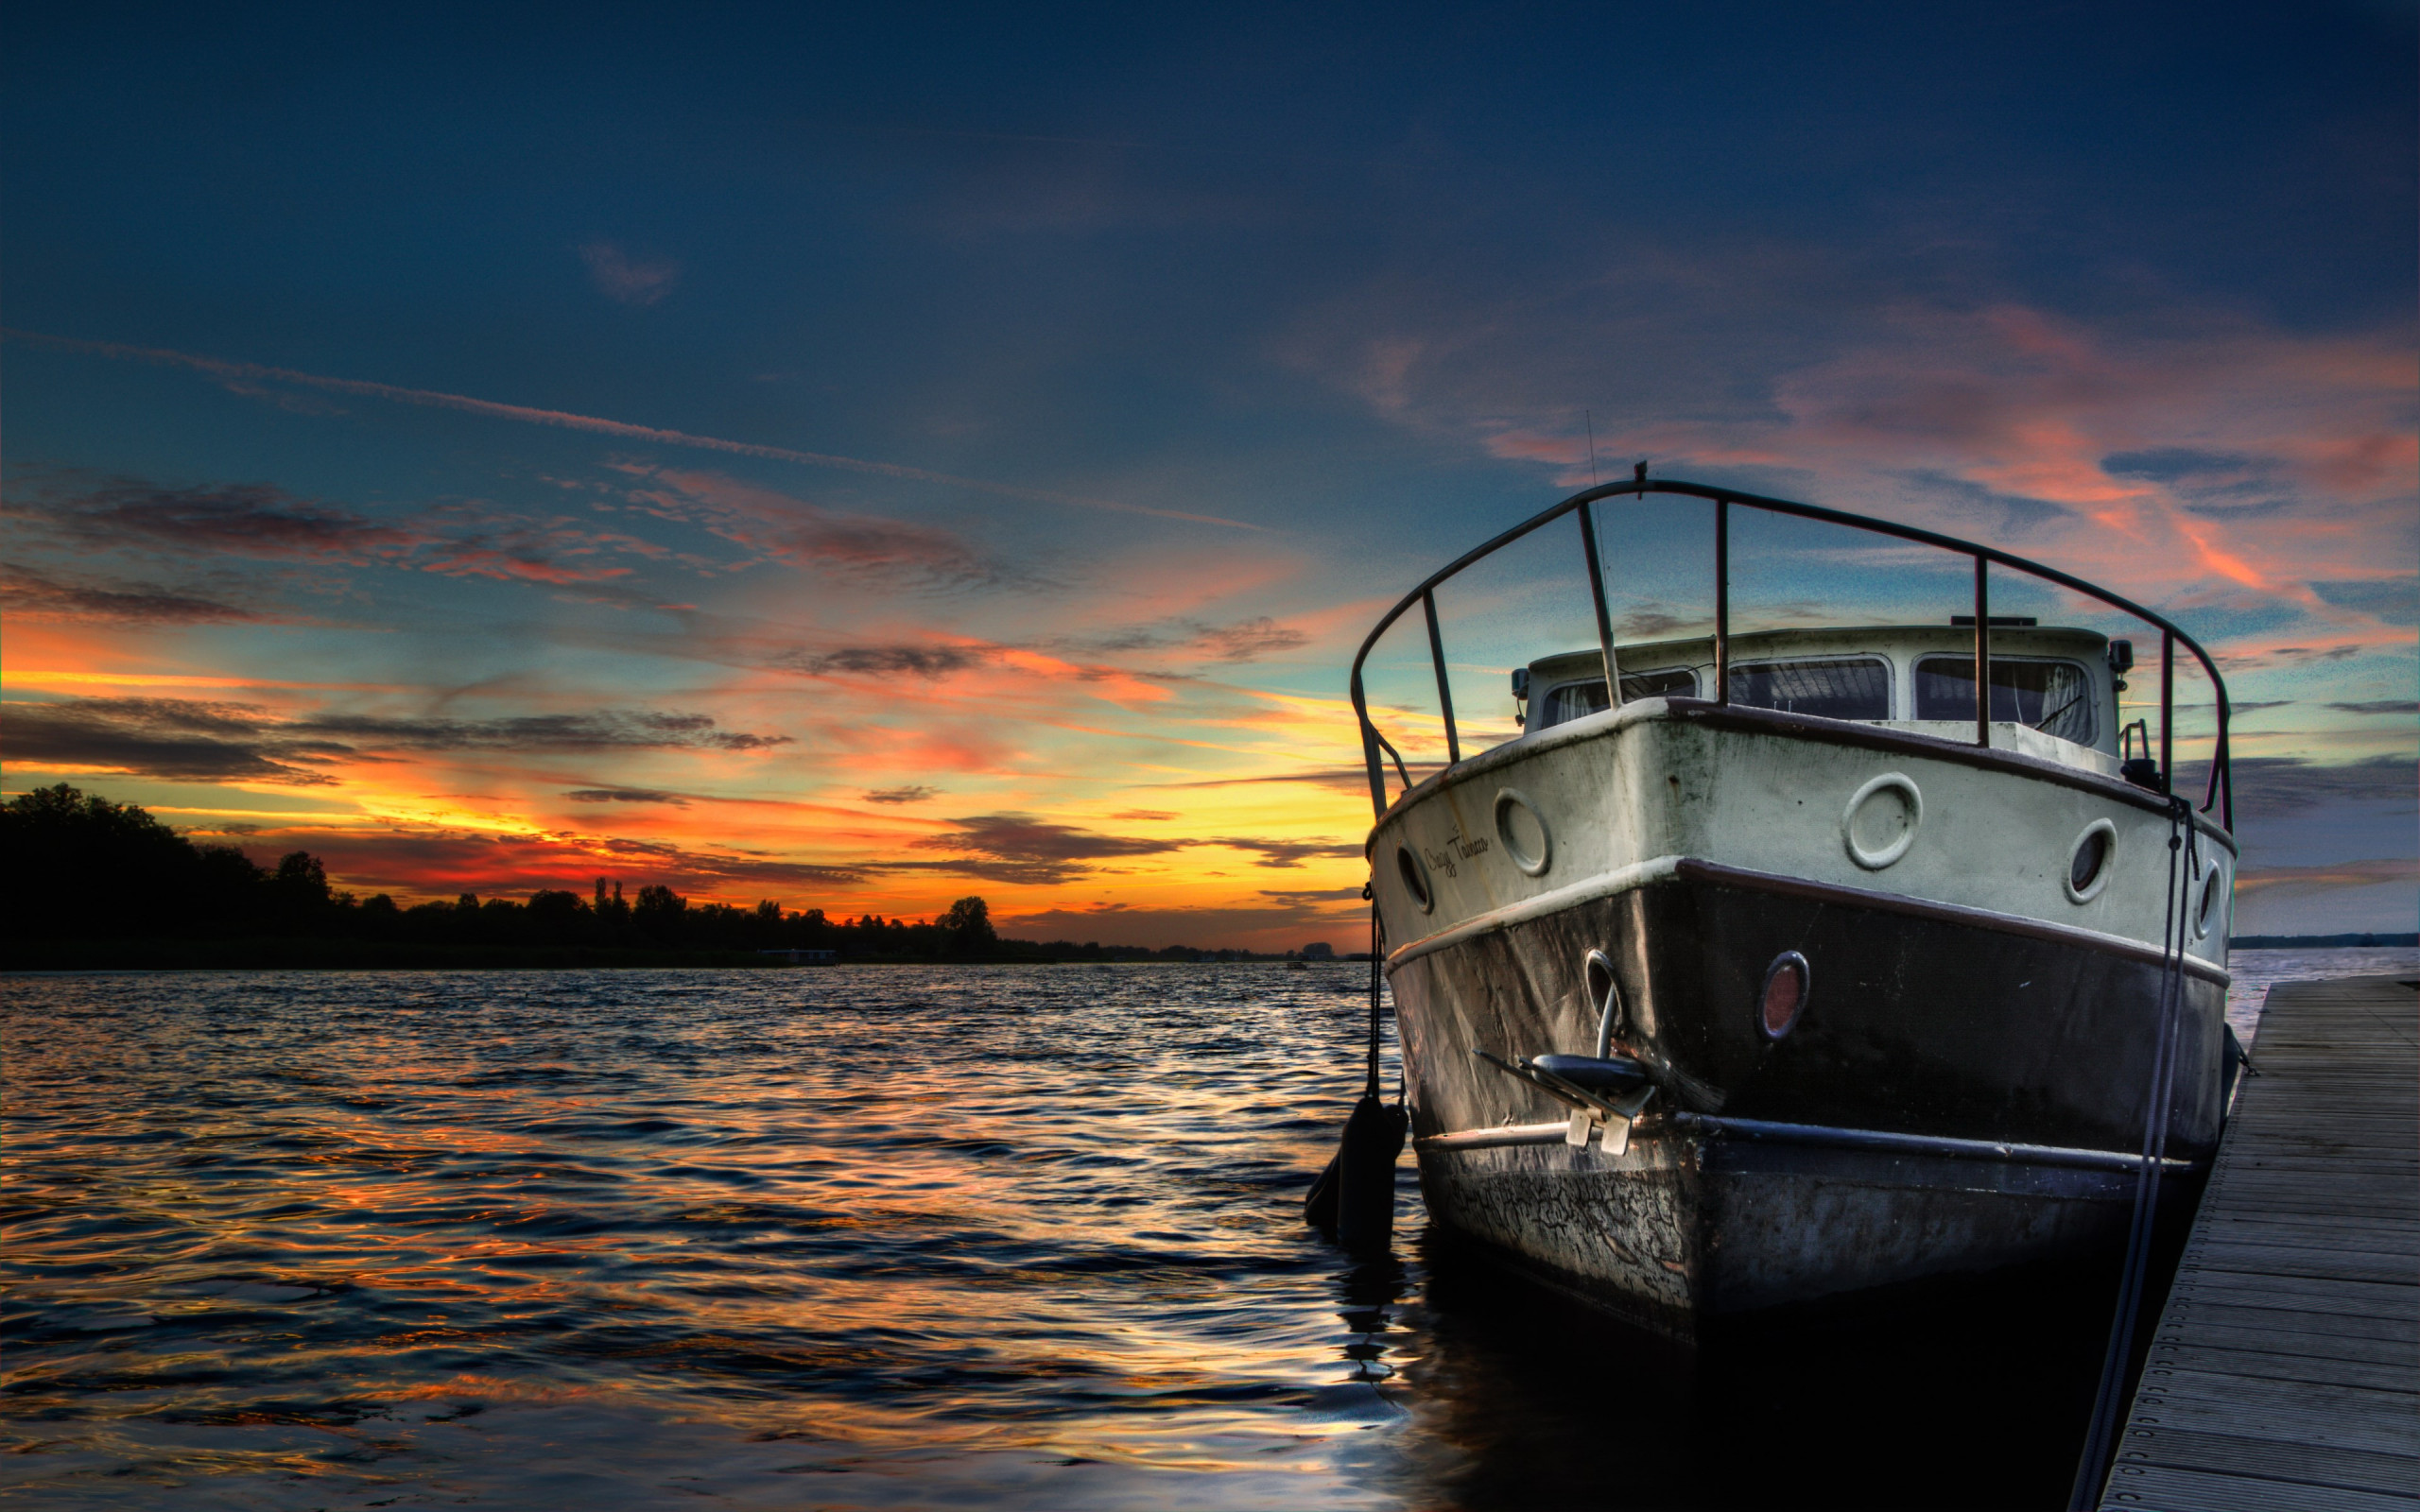 Boat and sunset in background | 2560x1600 wallpaper